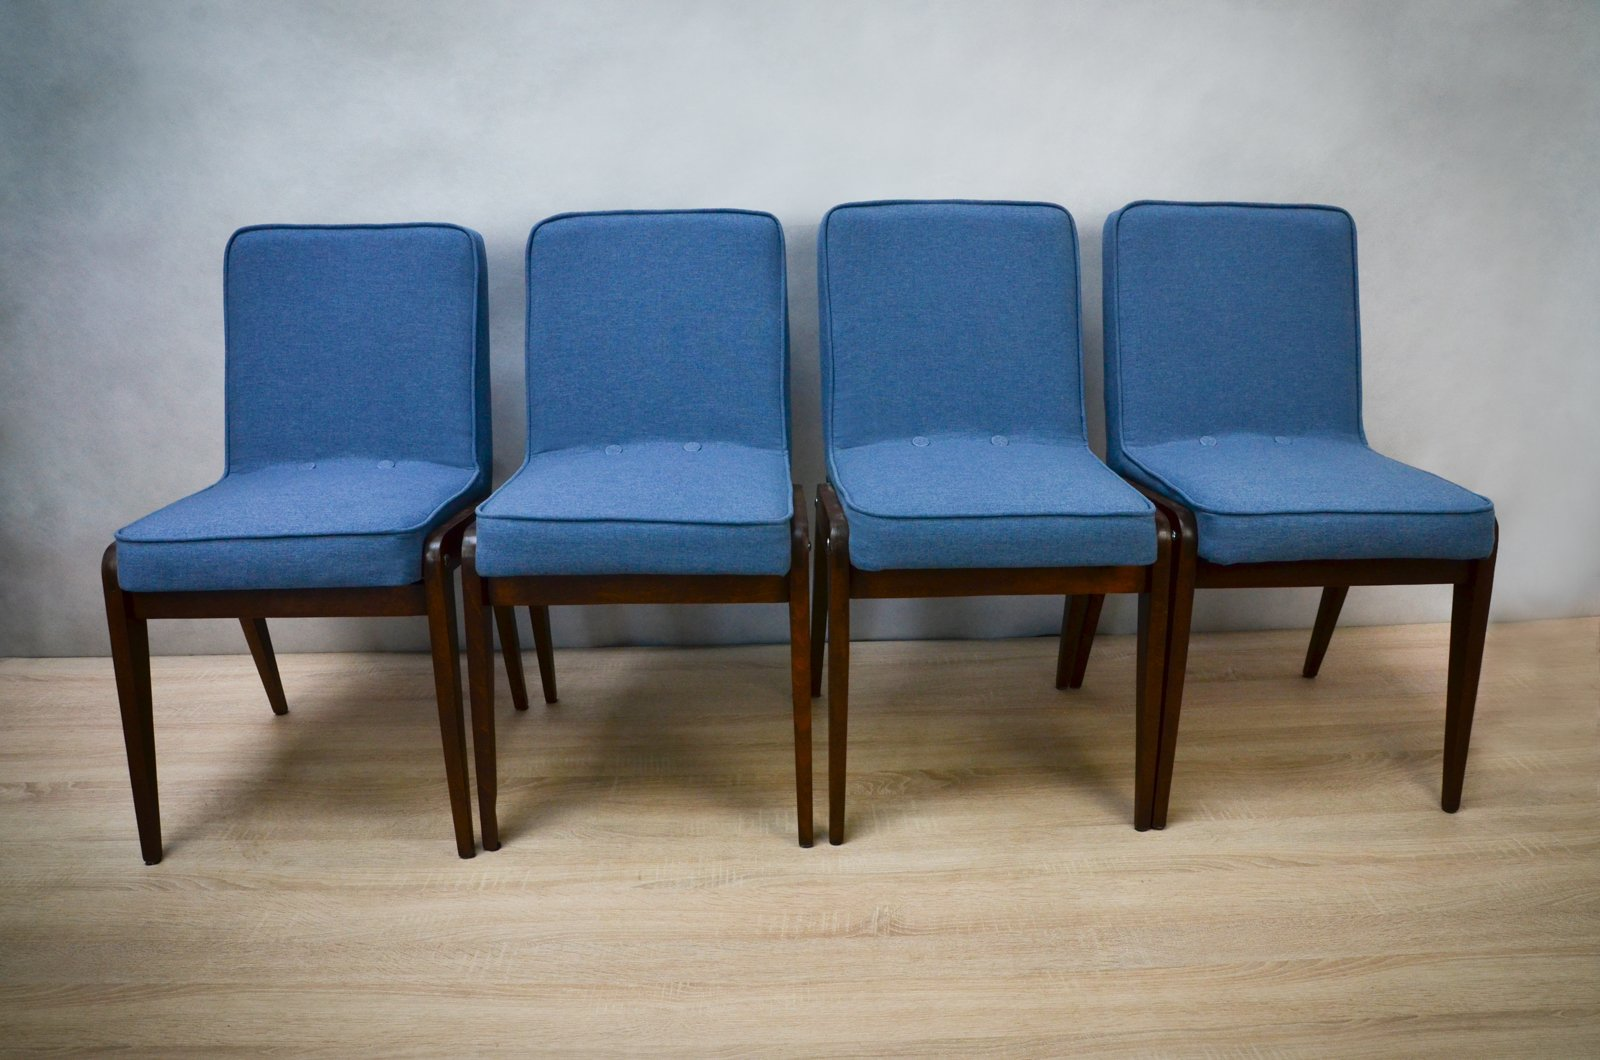 Light blue dining chairs - Aga Light Blue Dining Chairs By J Zef Marian Chierowski 1960s Set Of 4 For Sale At Pamono